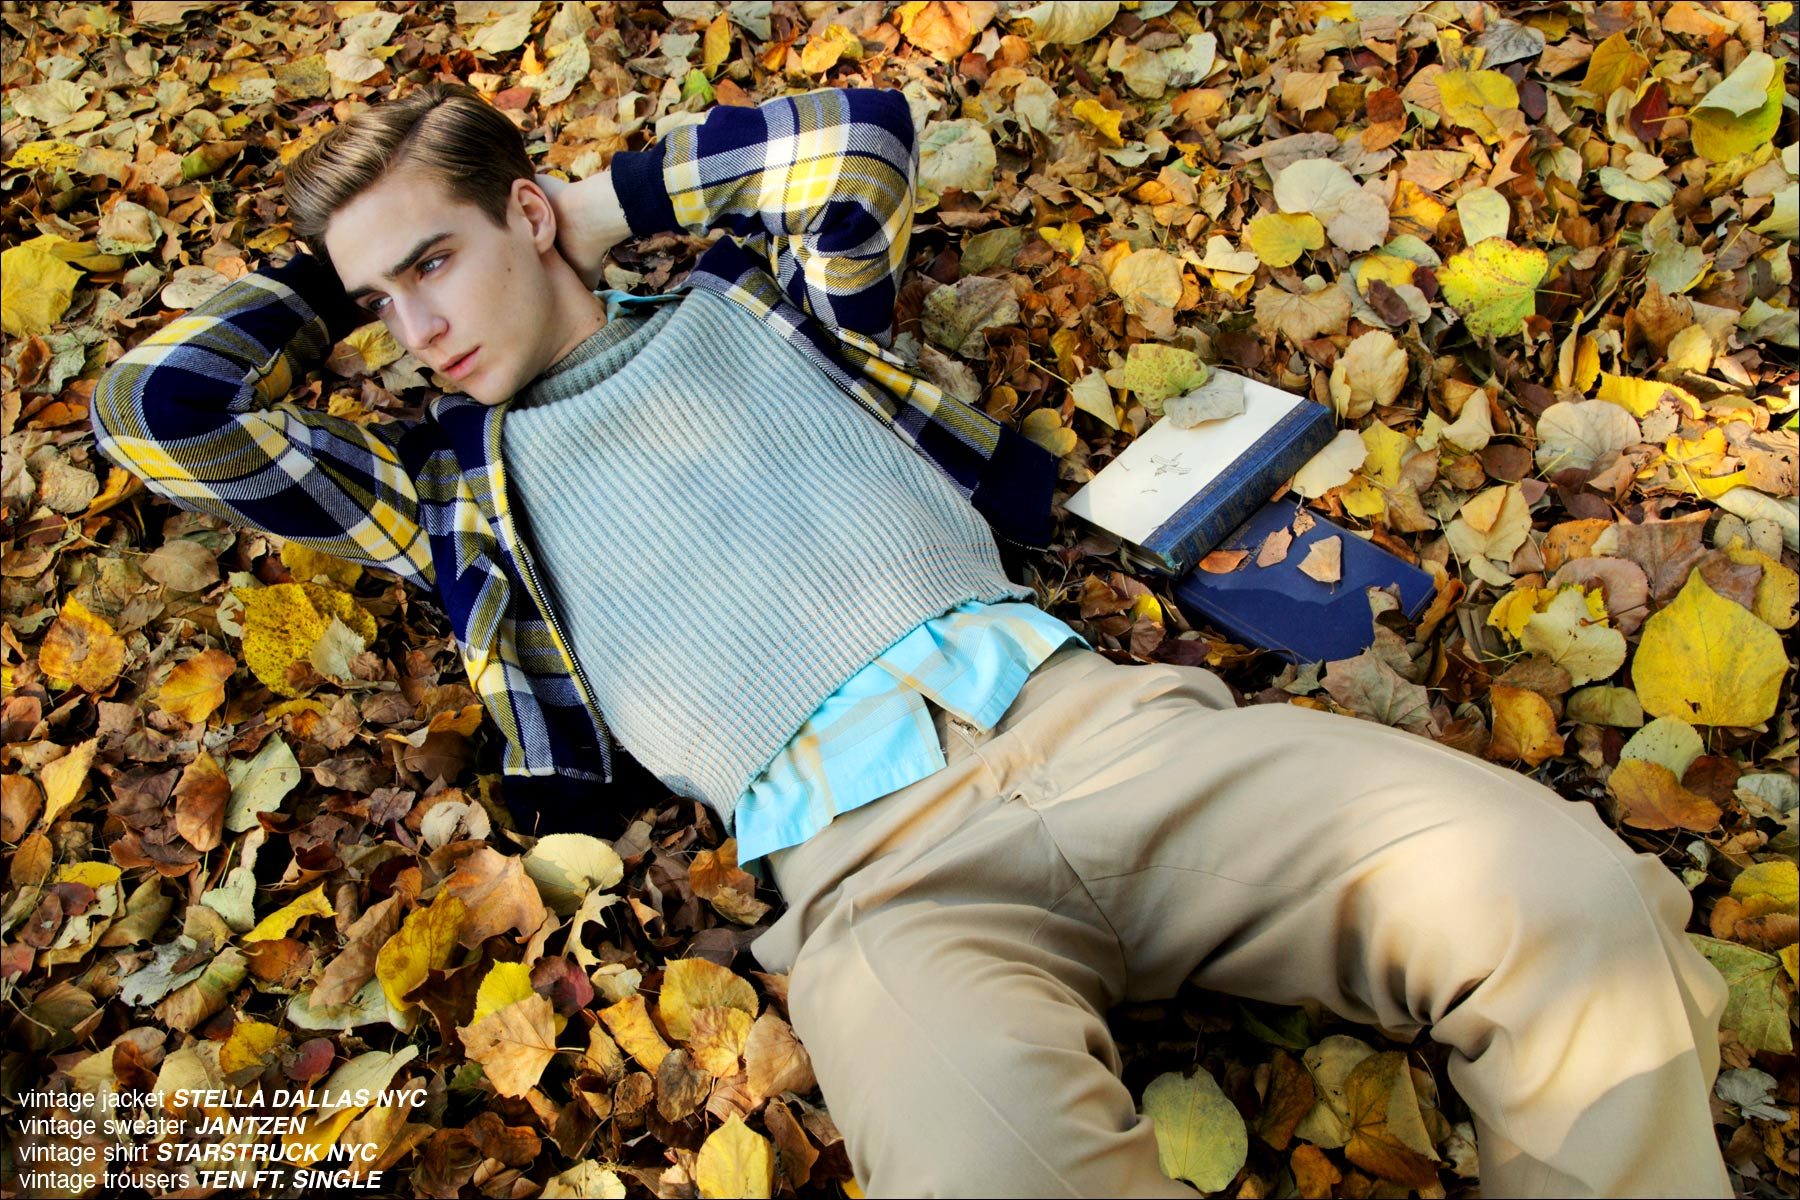 Model Samuel Roberts lays in a pile of leaves for a men's editorial for Ponyboy Magazine, photographed by Alexander Thompson in New York City.